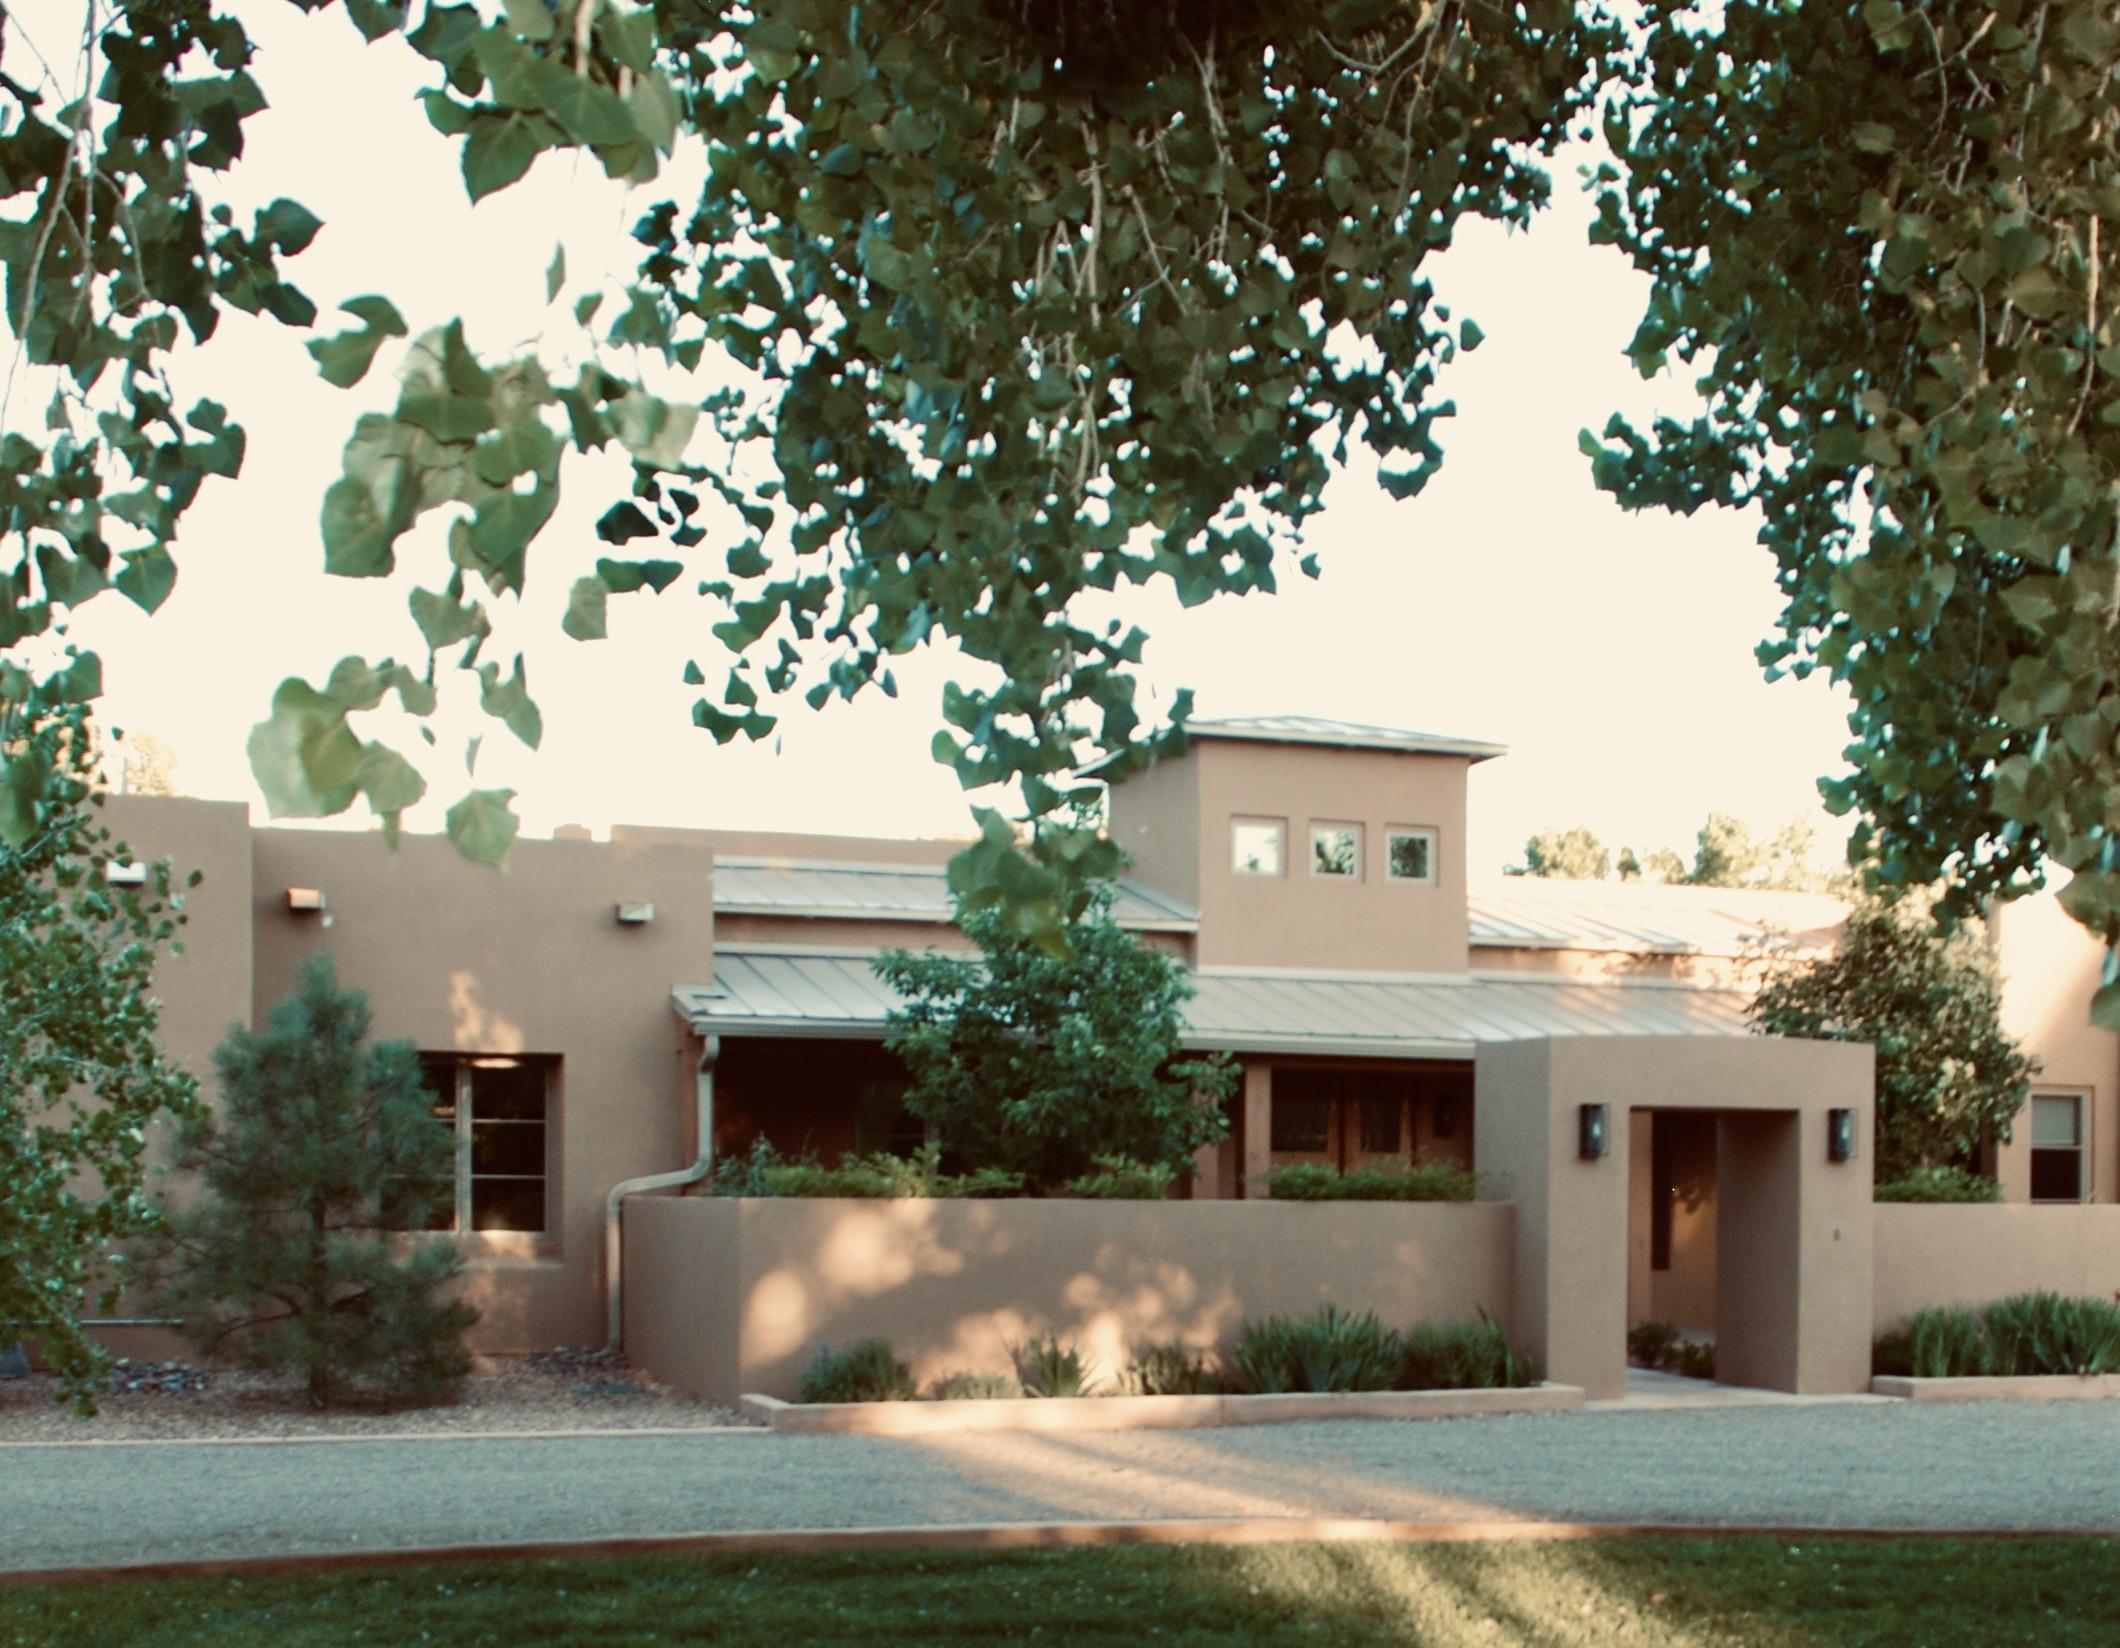 9804 BONA TERRA LOOP NW, ALBUQUERQUE, NM 87114